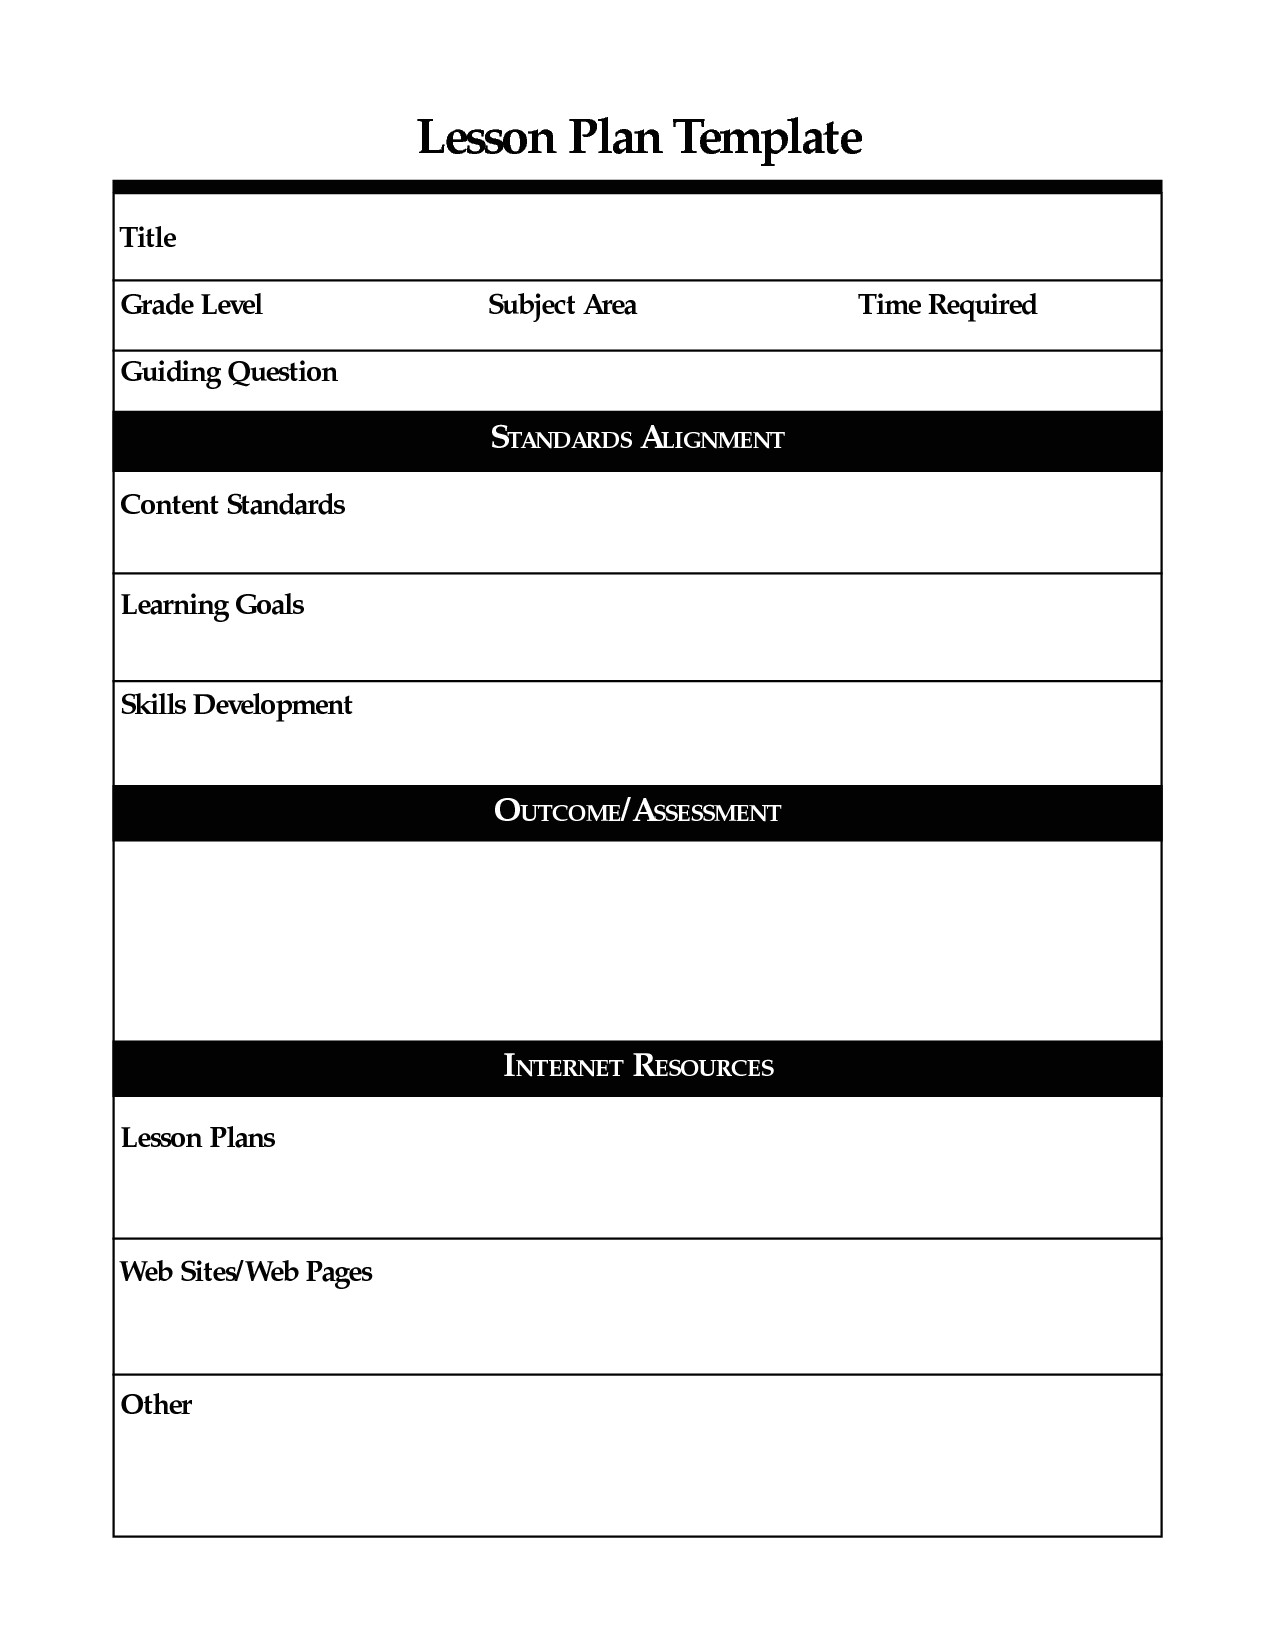 Lessonplan Template Printable Lesson Plan Template Free to Download